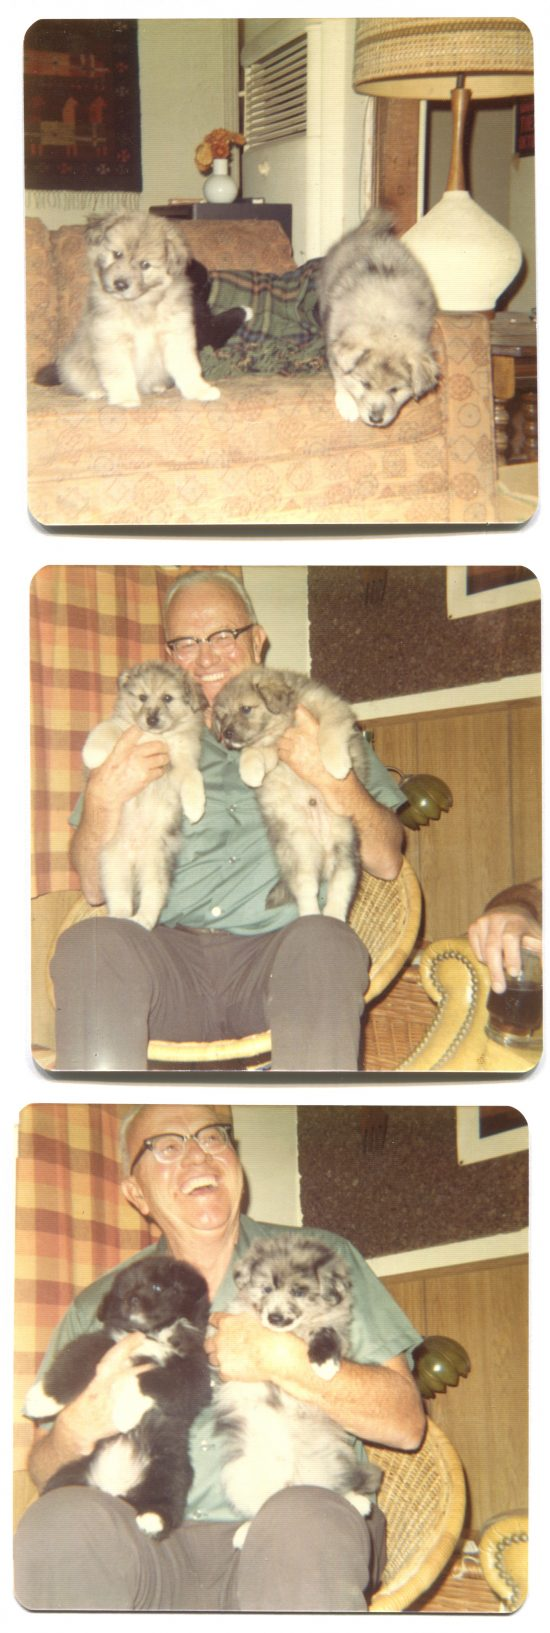 Photos of man with puppies in the 70s